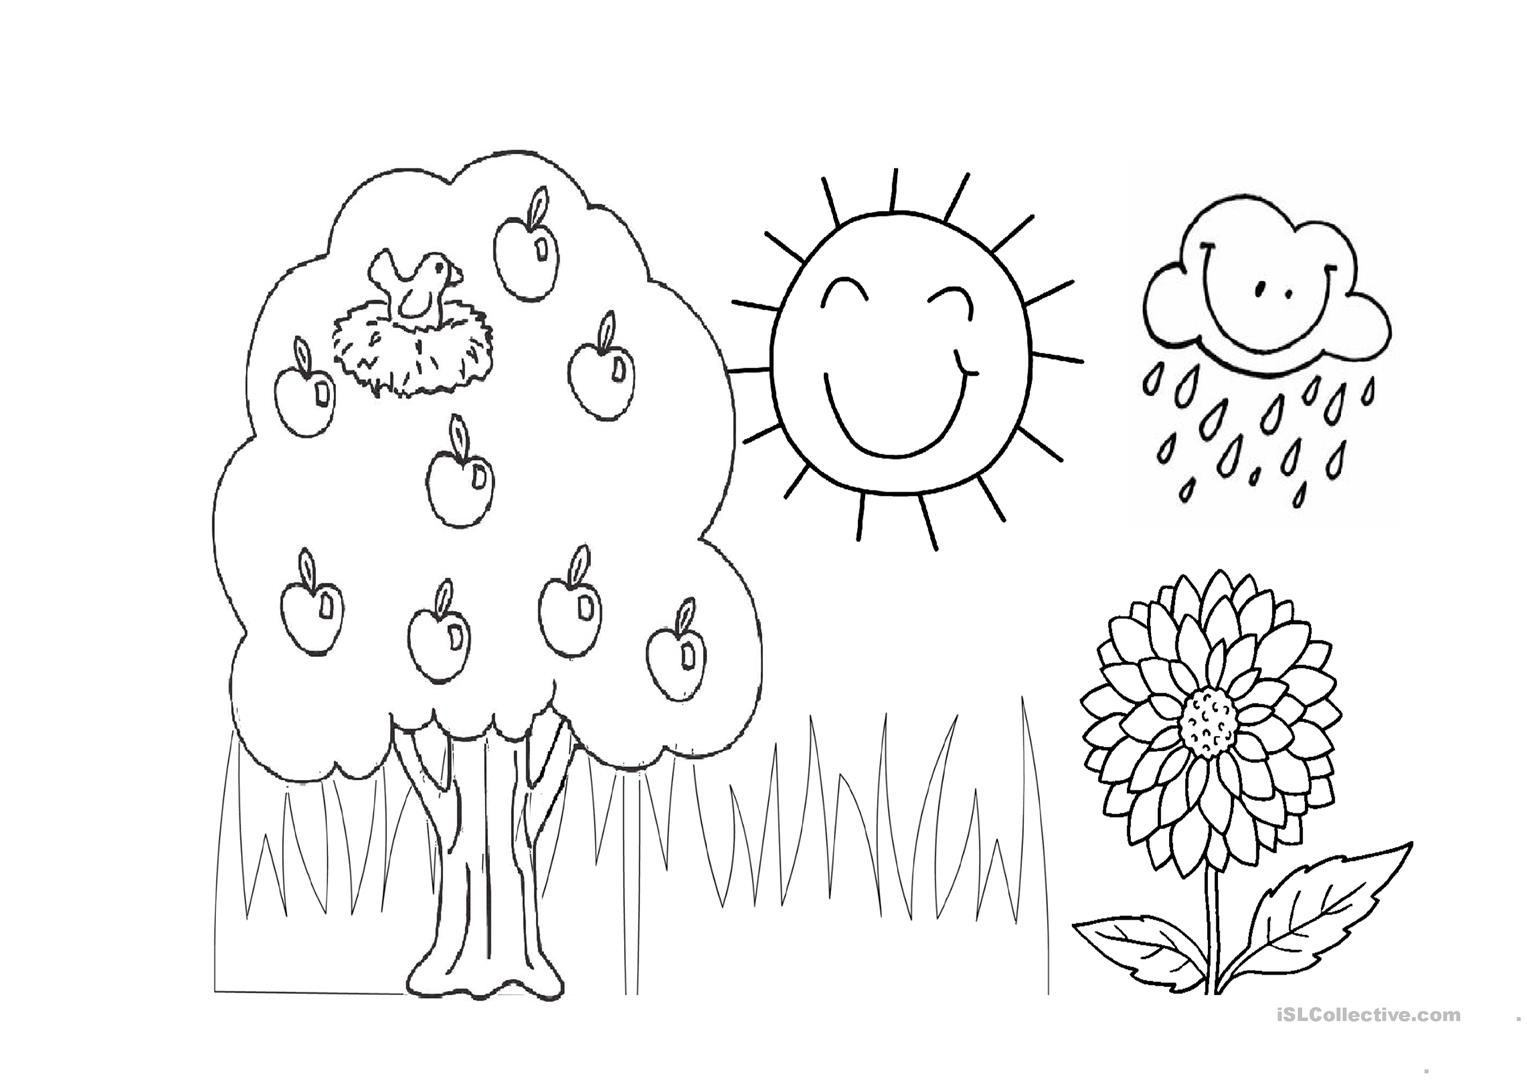 colouring activity for my backyard worksheet free esl printablecolouring activity for my backyard